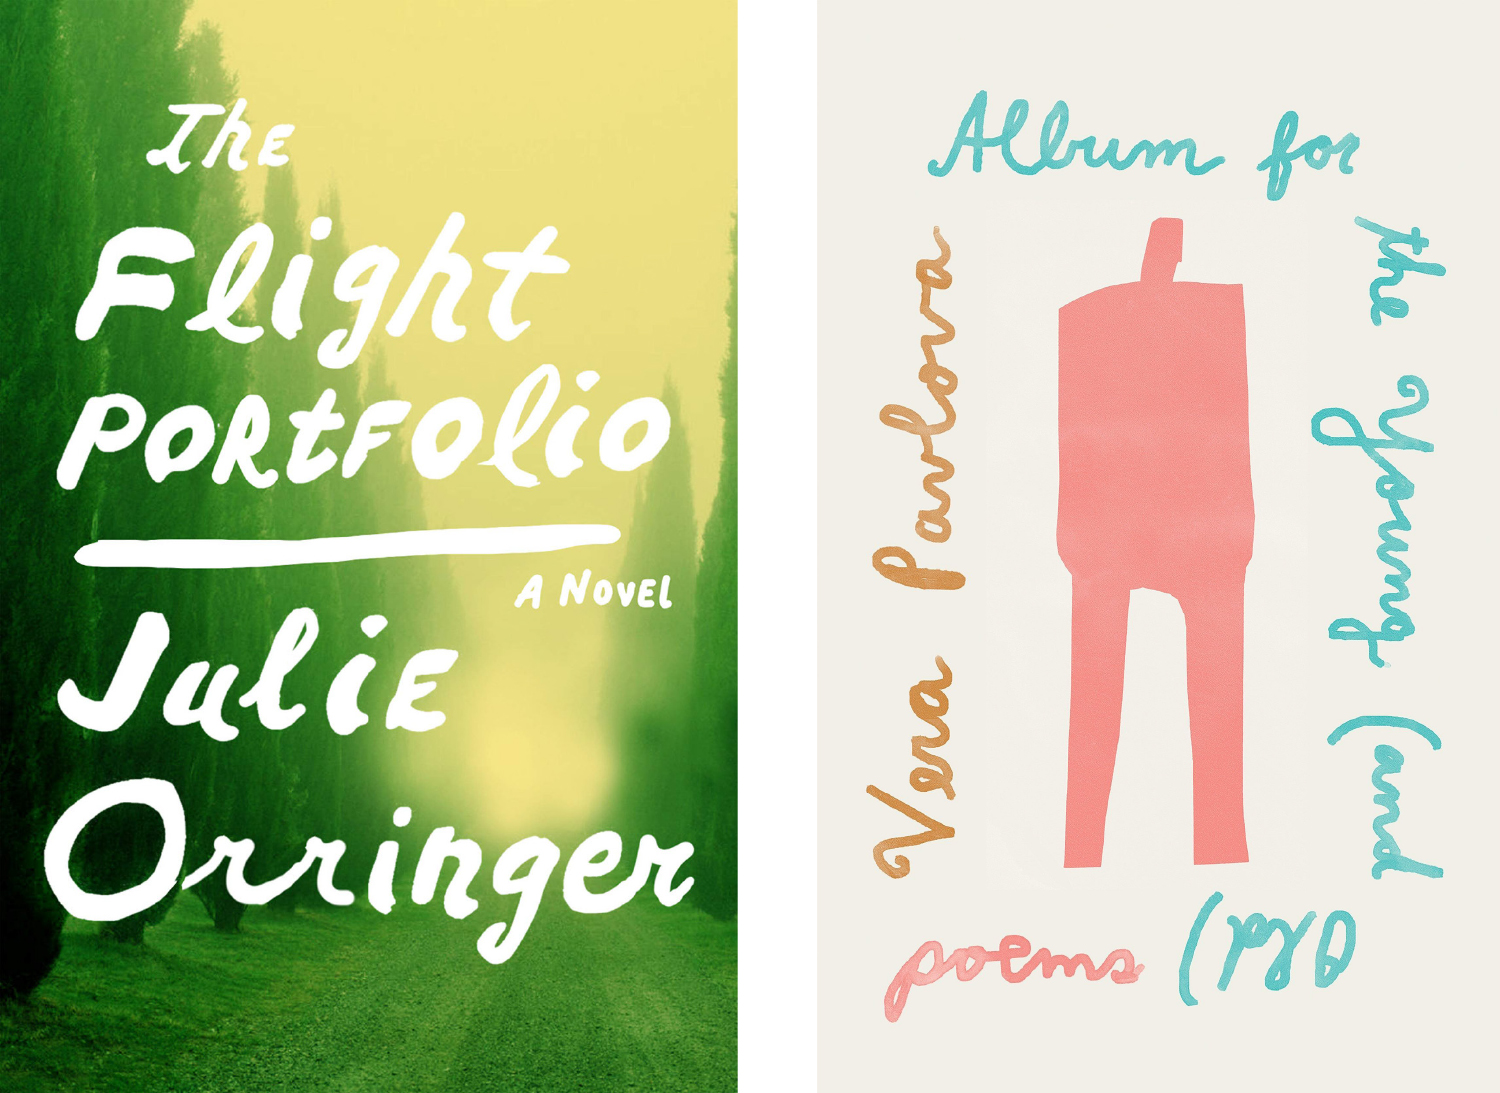 The Flight Portfolio and Album for the Young covers